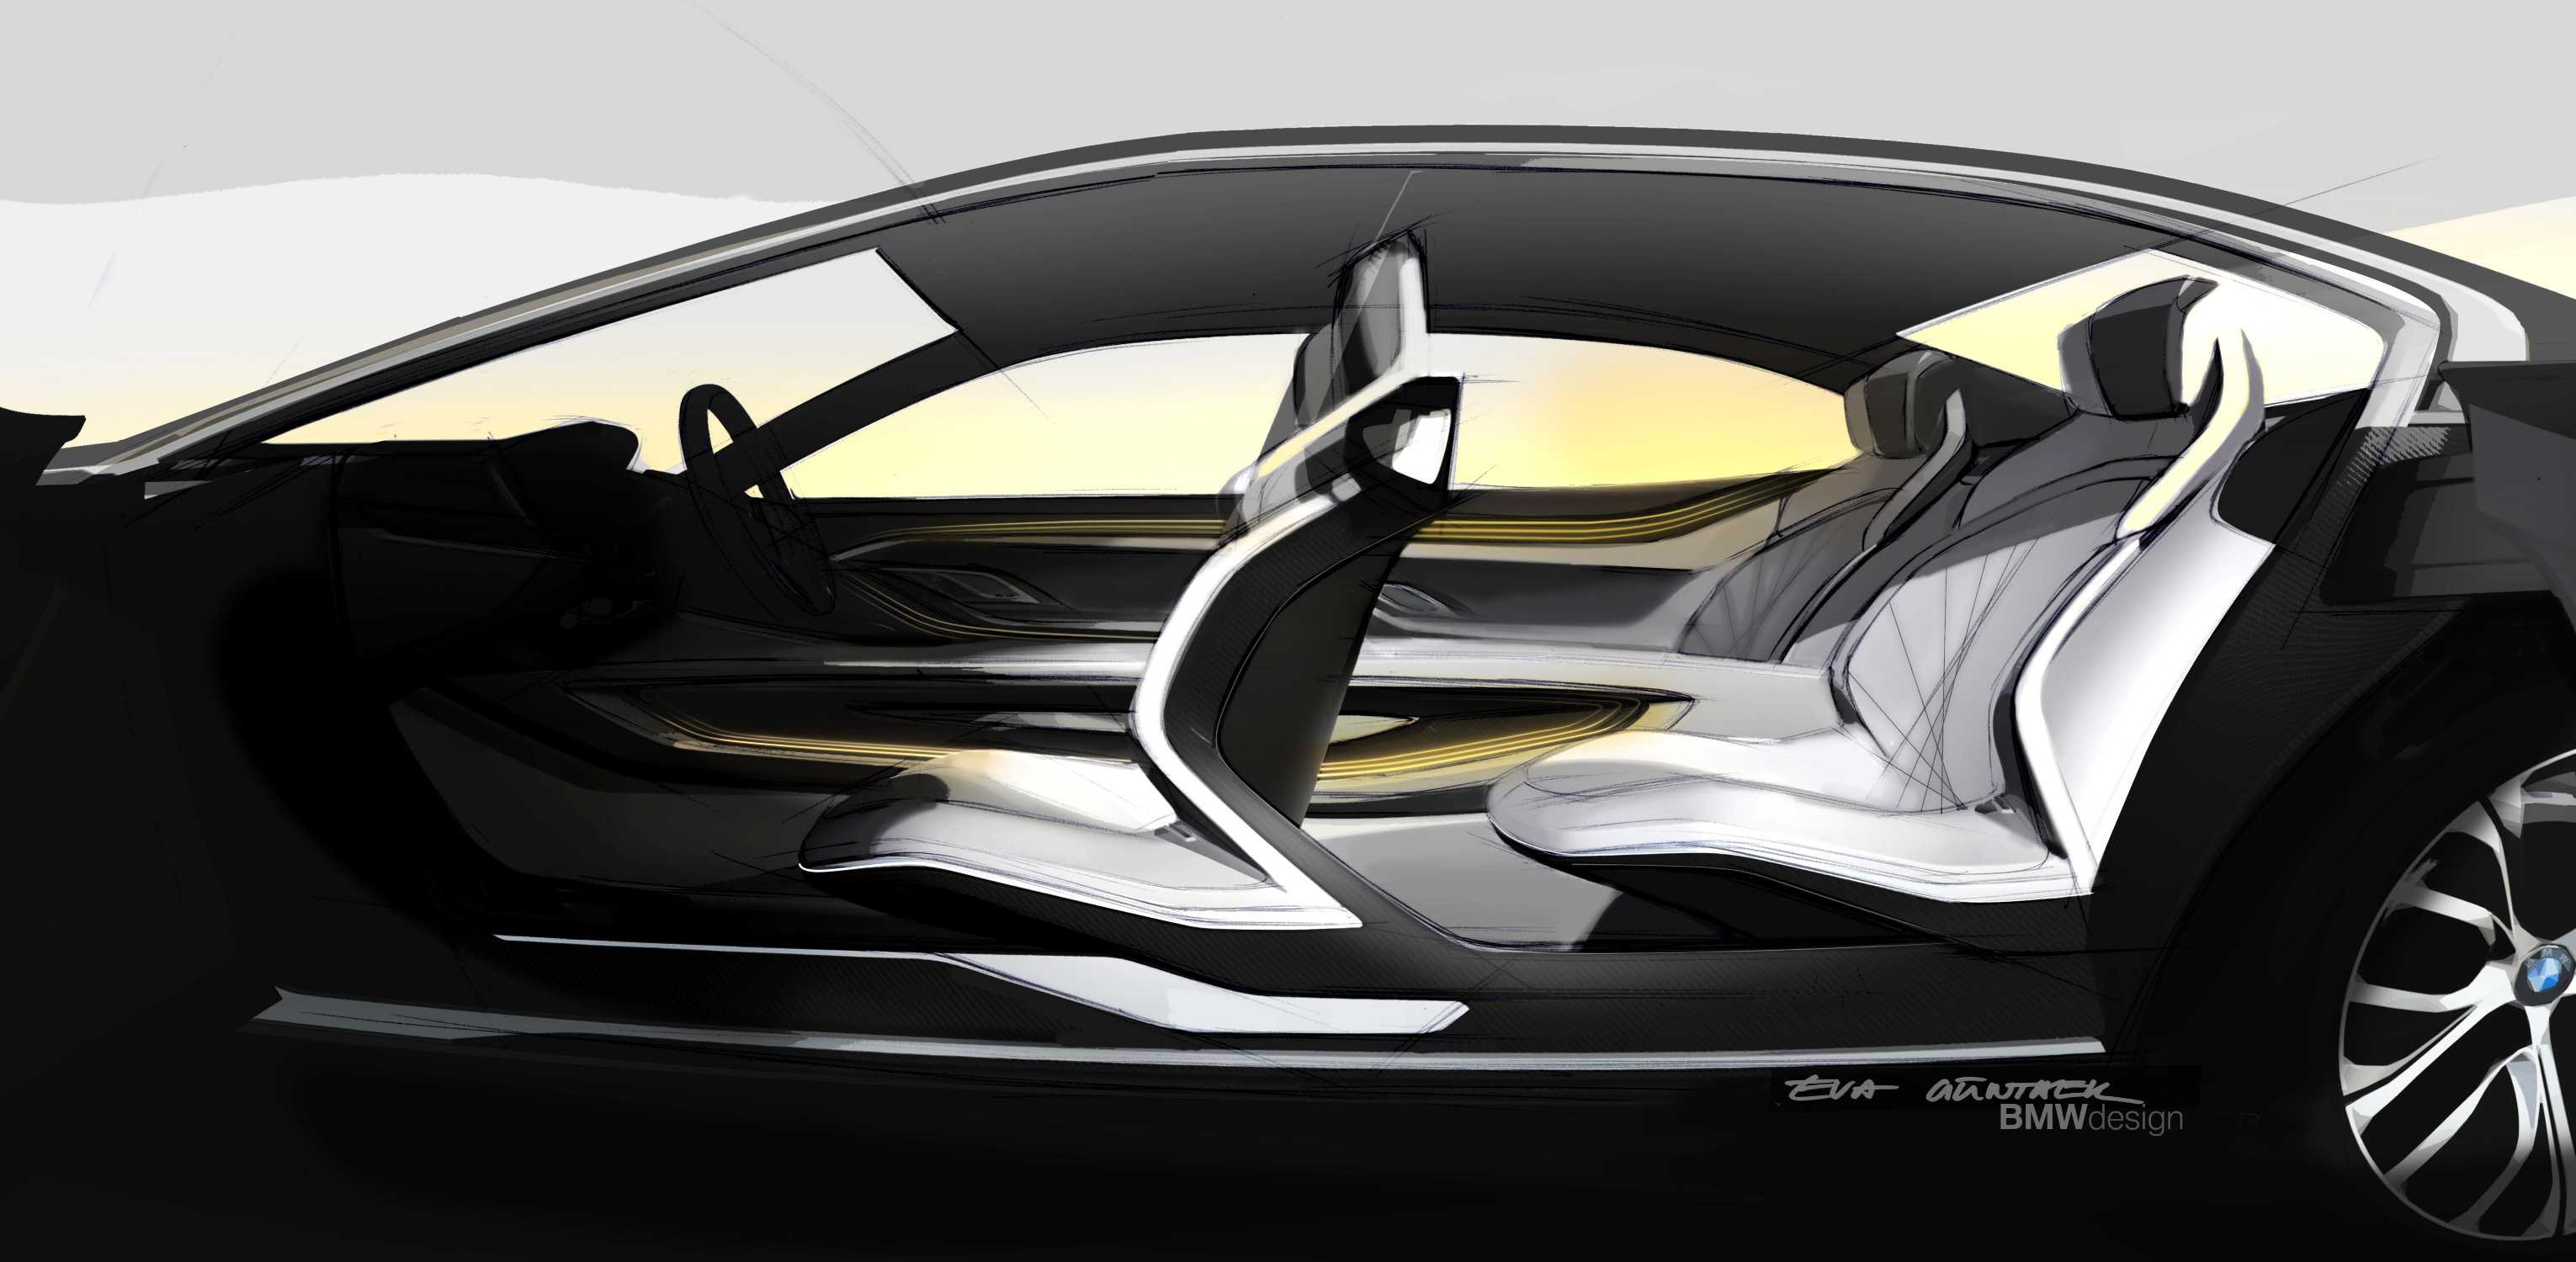 bmw vision future luxury sketch interior side view 04 2014. Black Bedroom Furniture Sets. Home Design Ideas